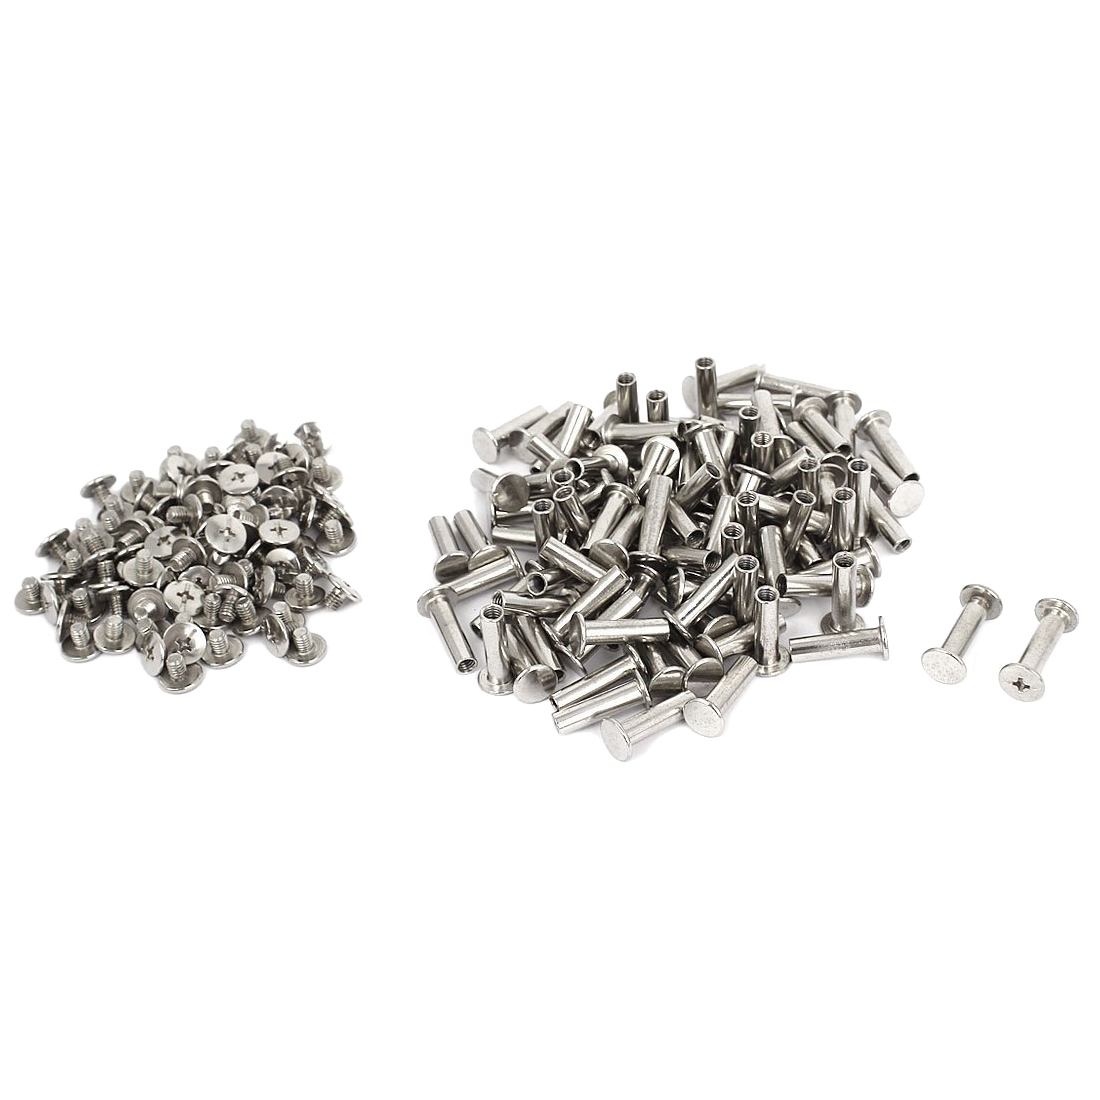 100 set Scrapbook Nickel Plated 5mmx18mm Binding Screw Post диски helo he844 chrome plated r20